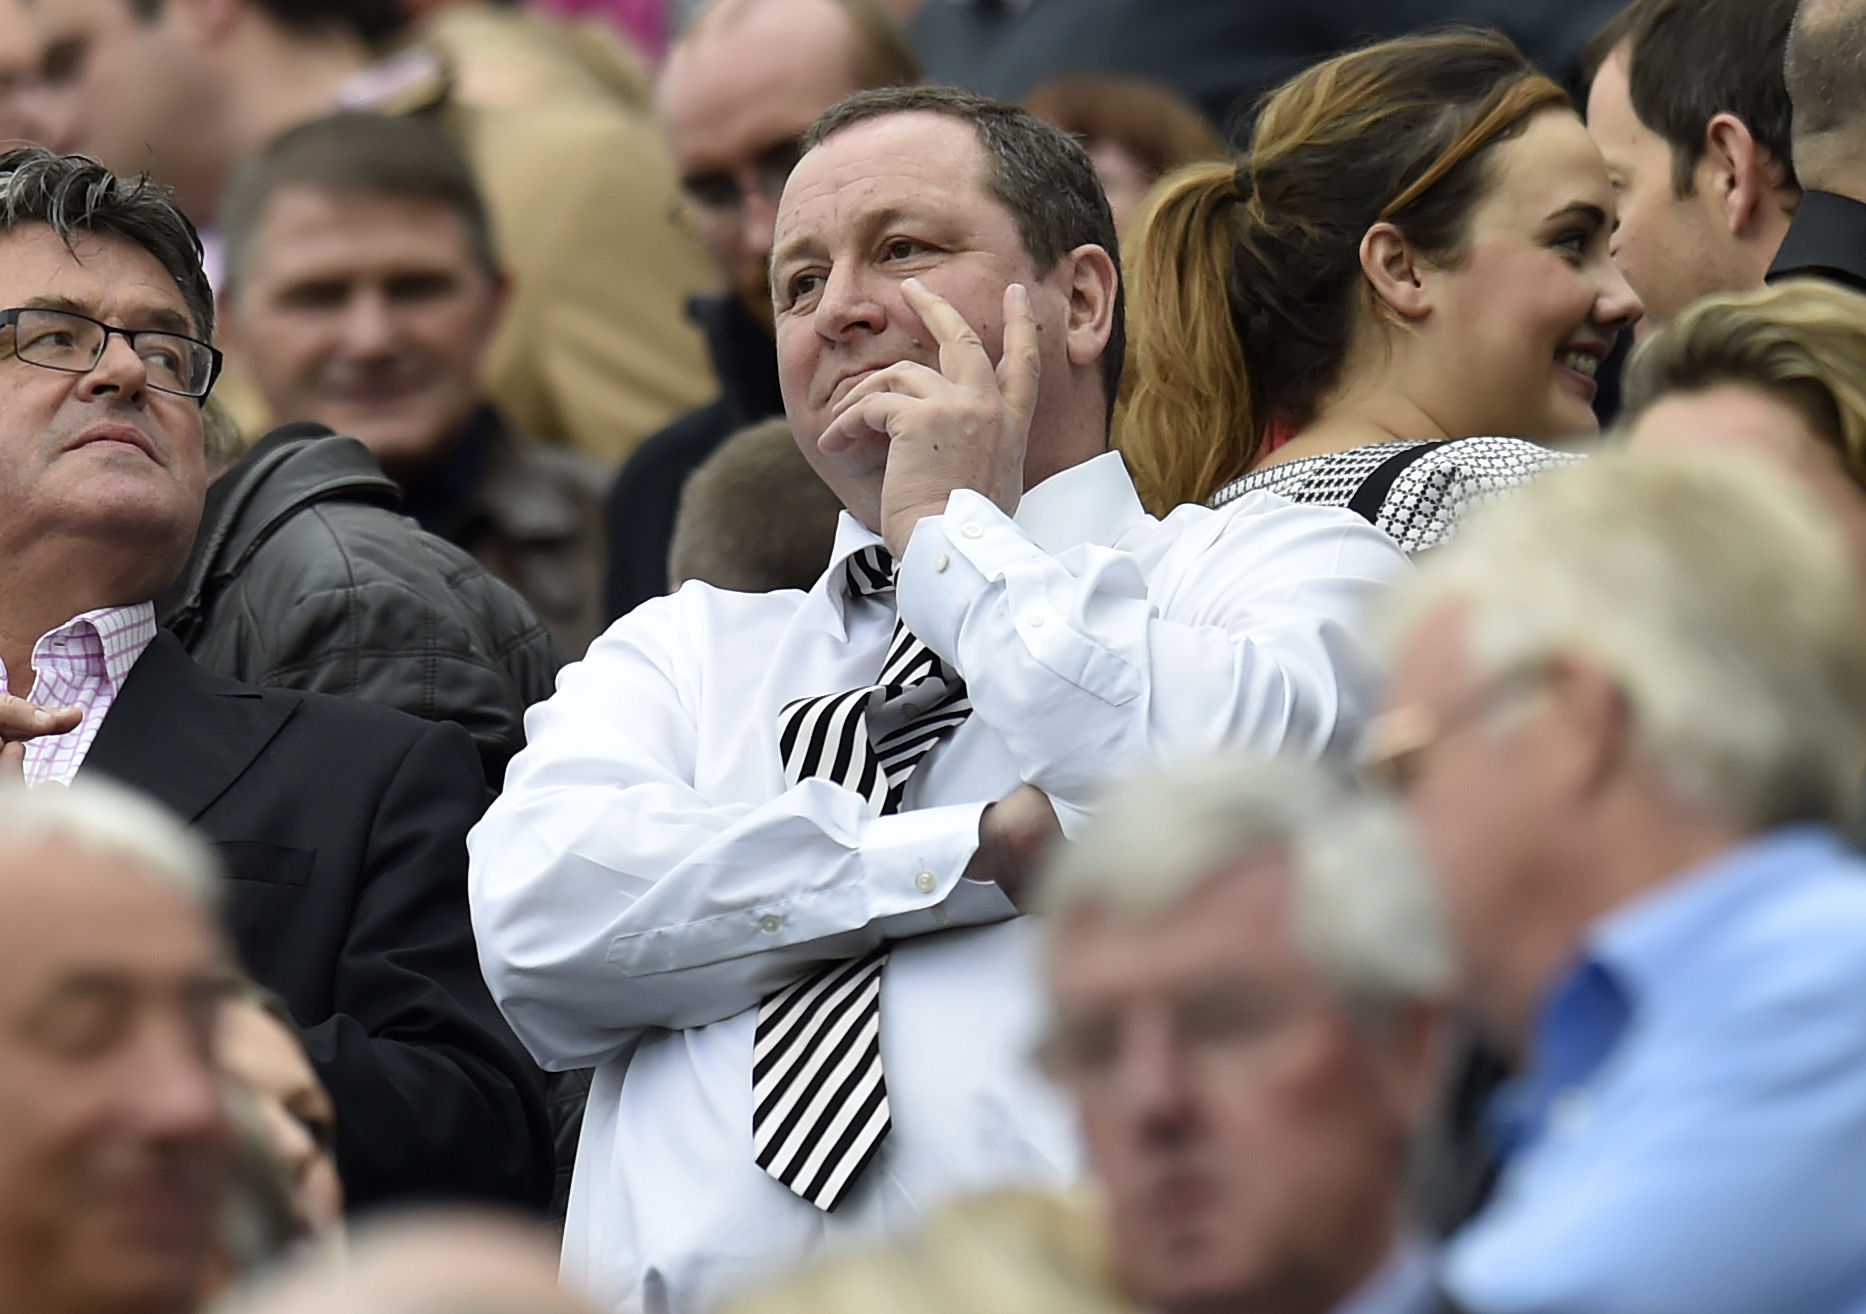 ONGOING DISCUSSIONS: Newcastle United owner Mike Ashley